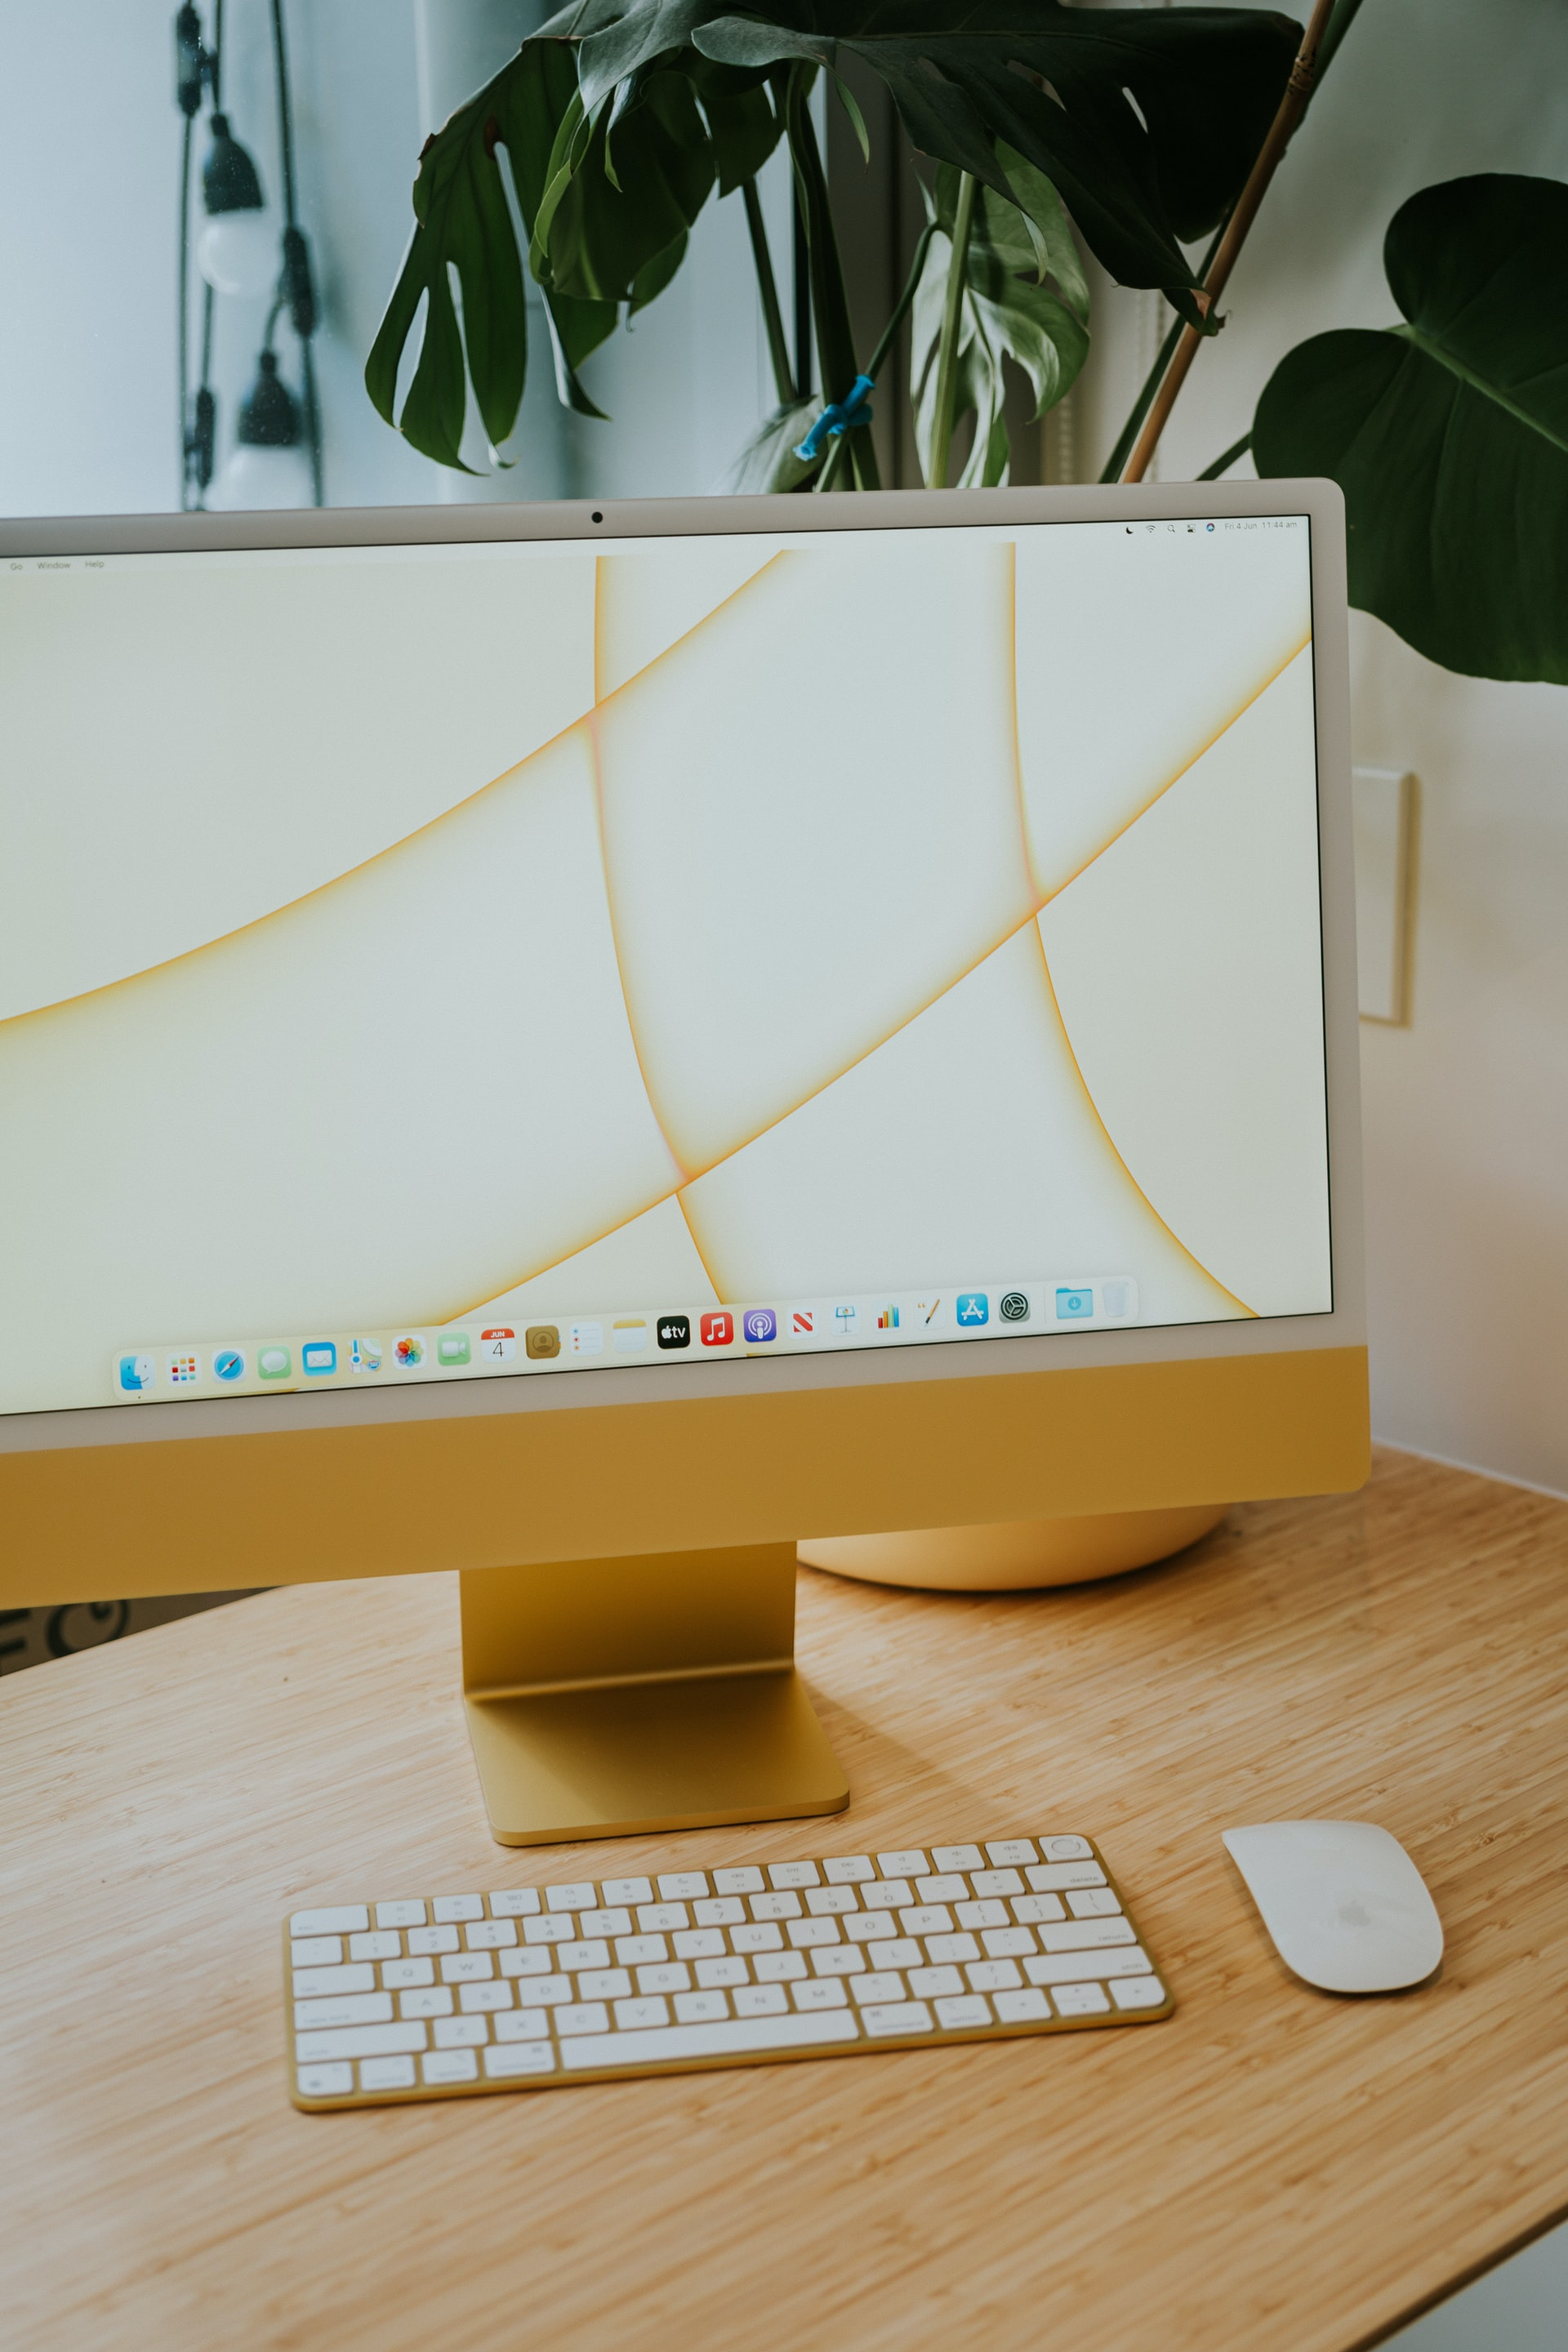 Five Reasons to Buy a Mac and Change Your Life